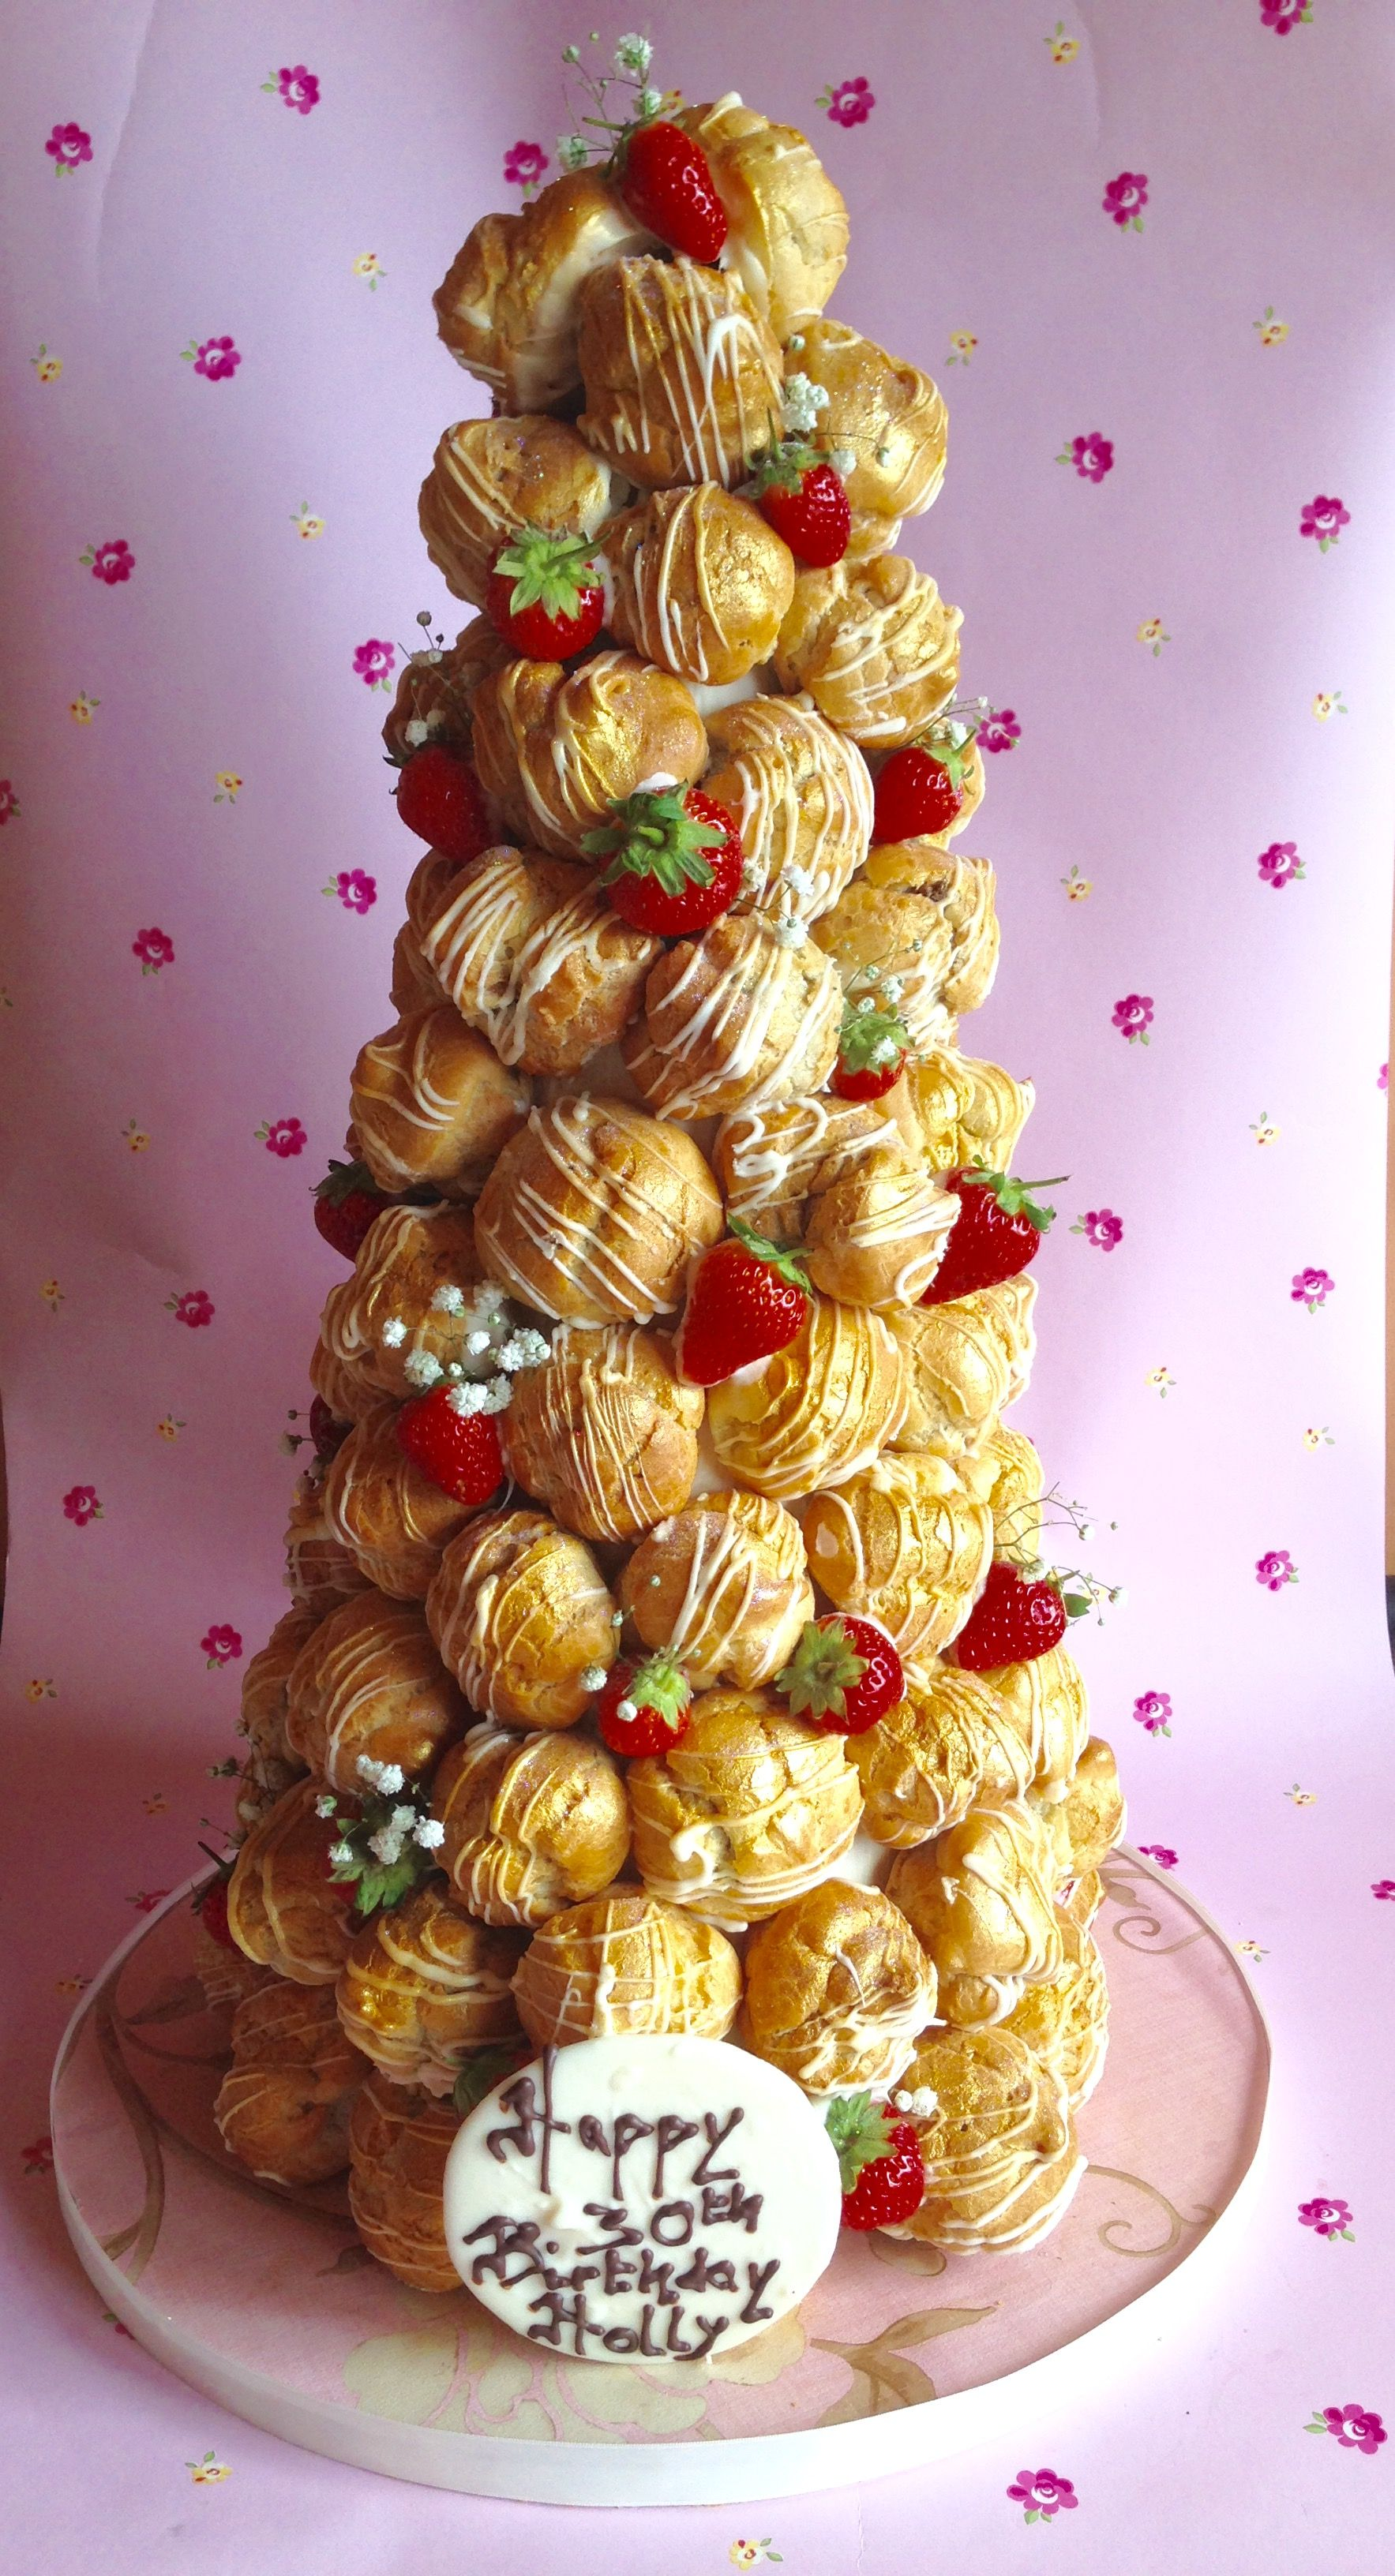 Summer Croquembouche Spun With White Chocolate And Brushed With A